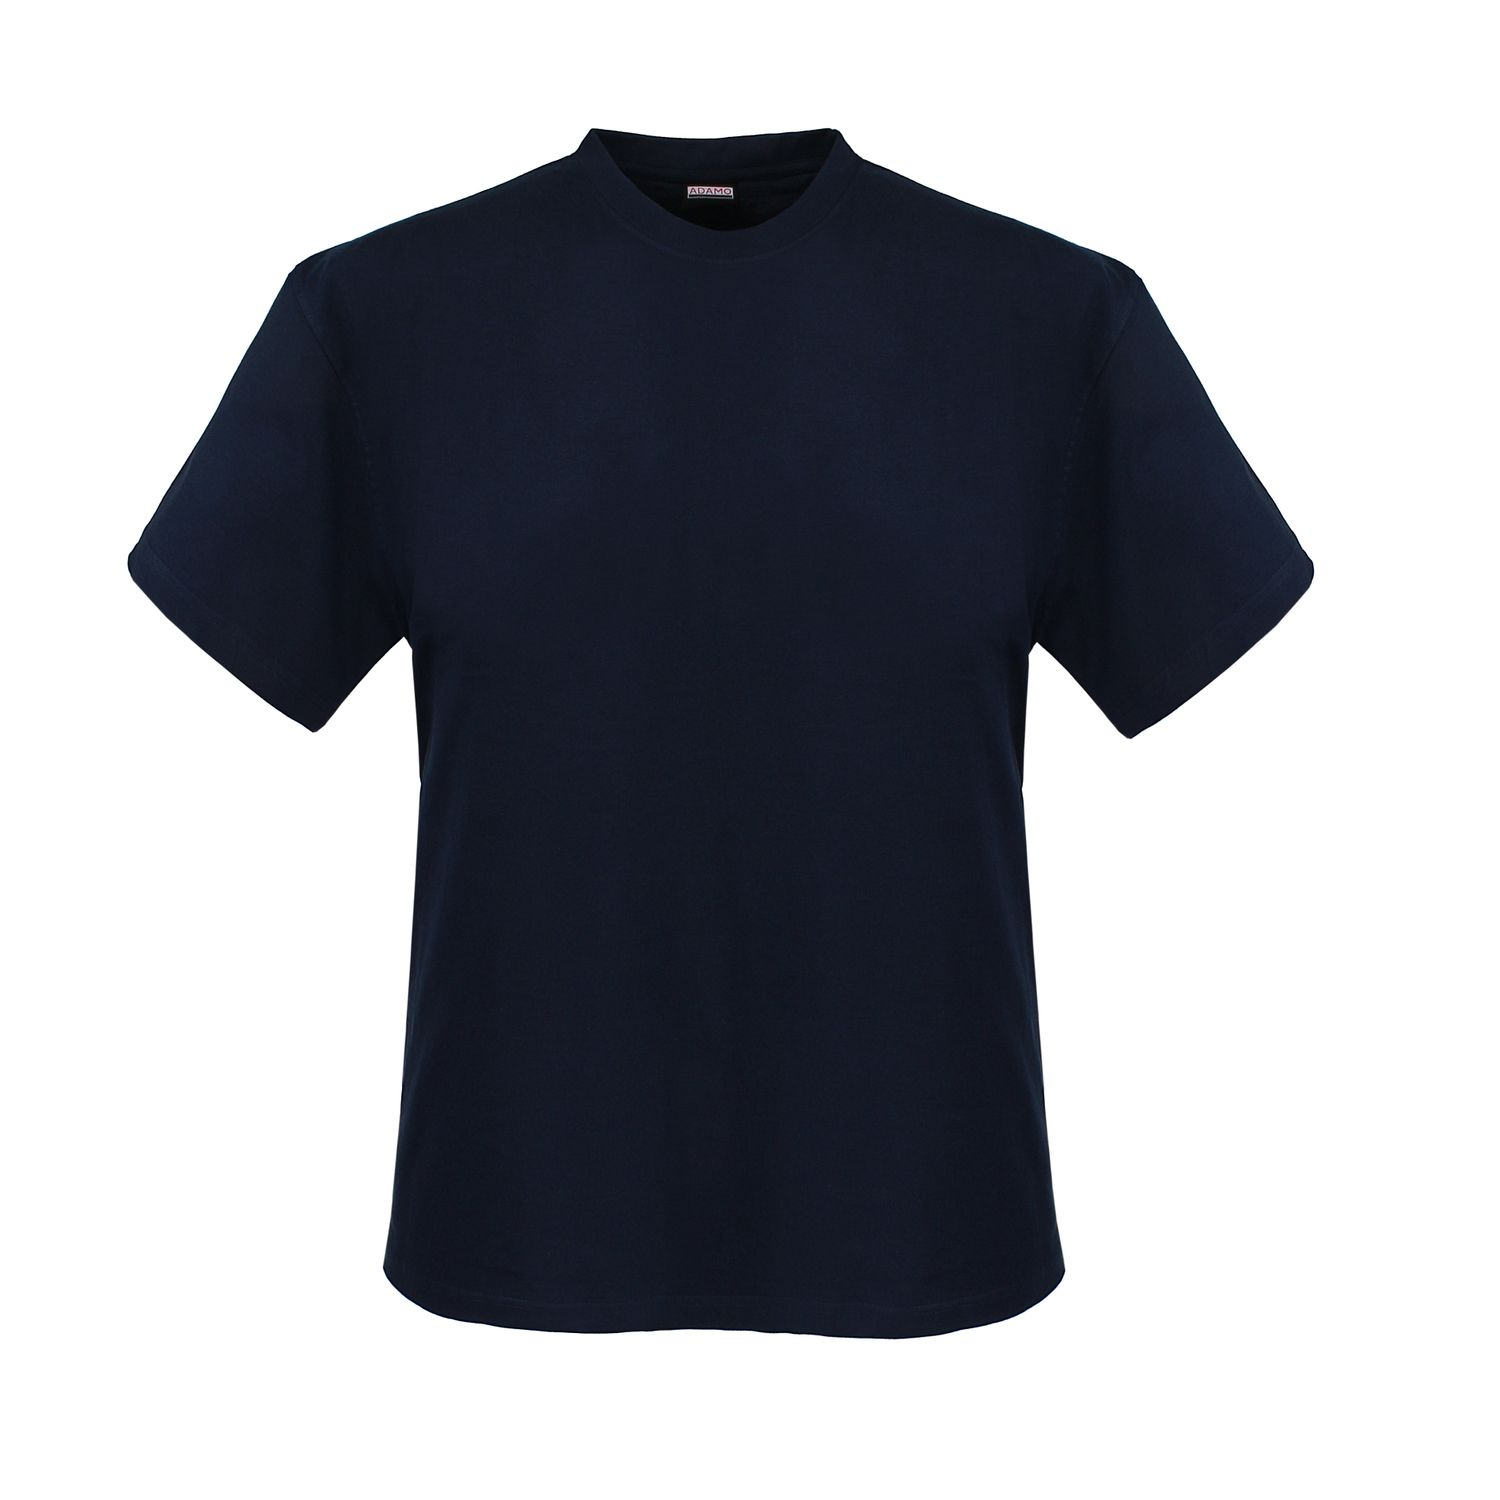 Detail Image to Double pack MARLON navy t-shirt by ADAMO up to extra large size 12XL